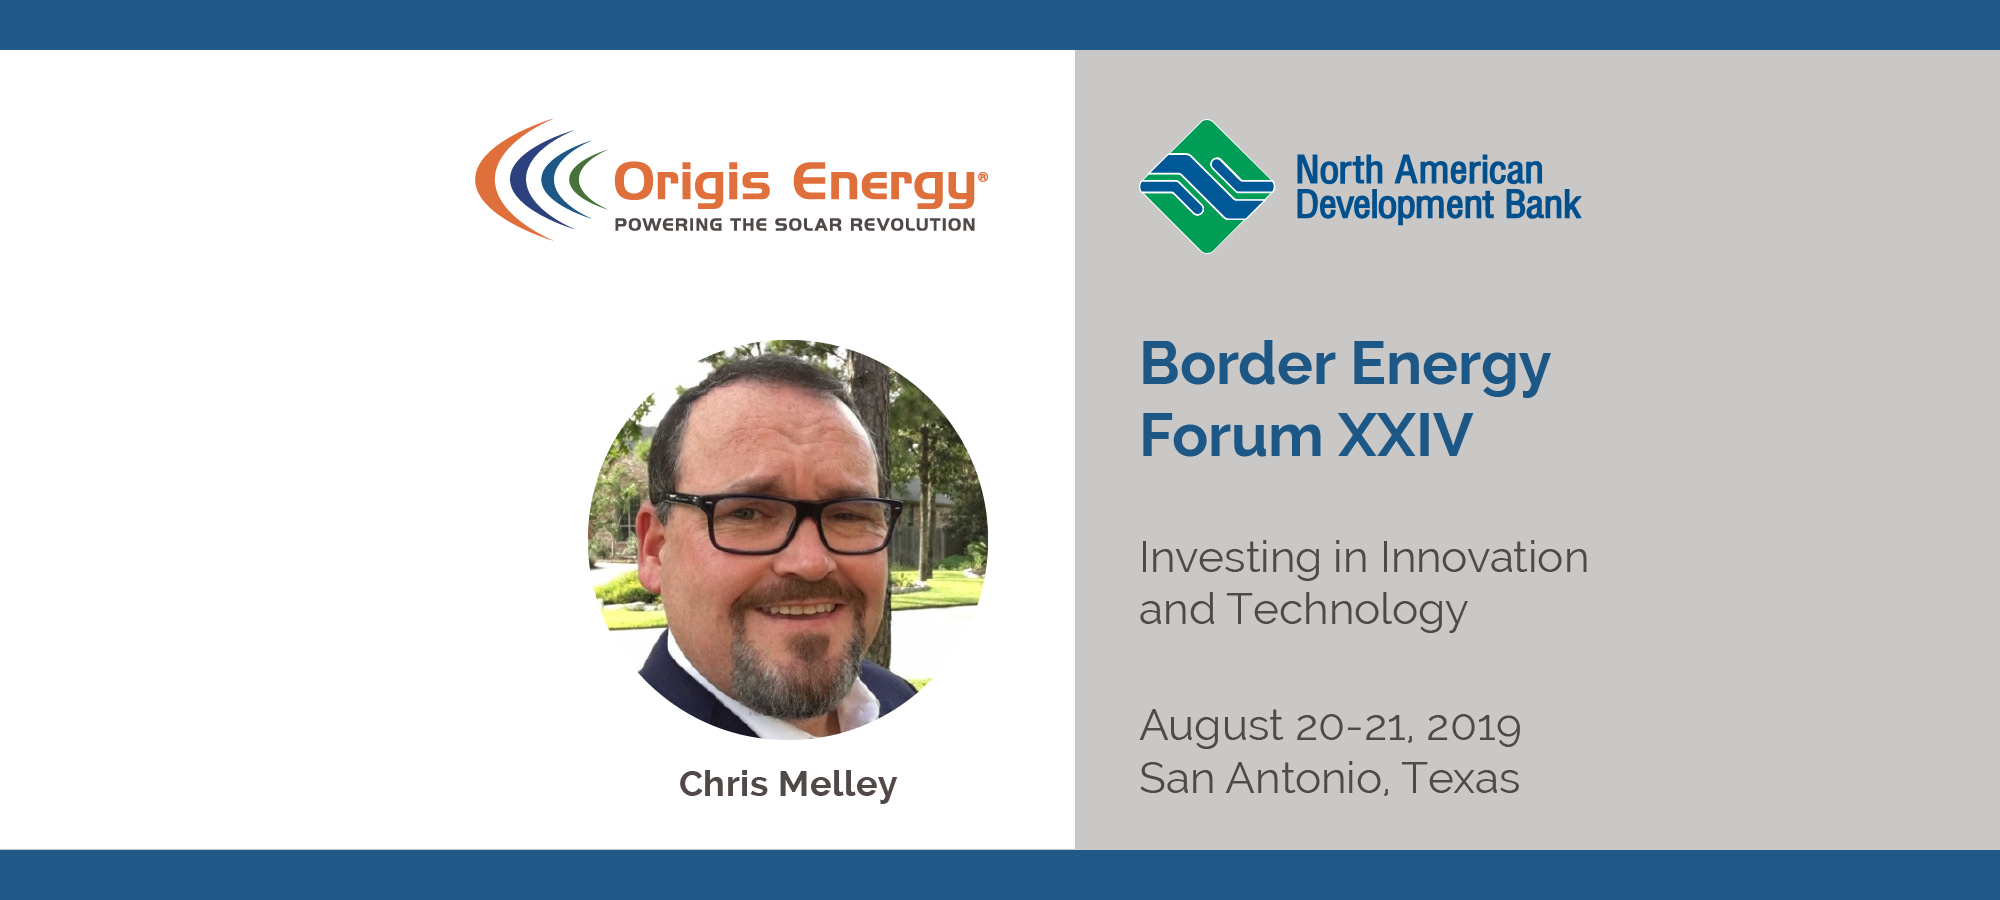 Origis Energy | Border Energy Forum XXIV | Chris Melley